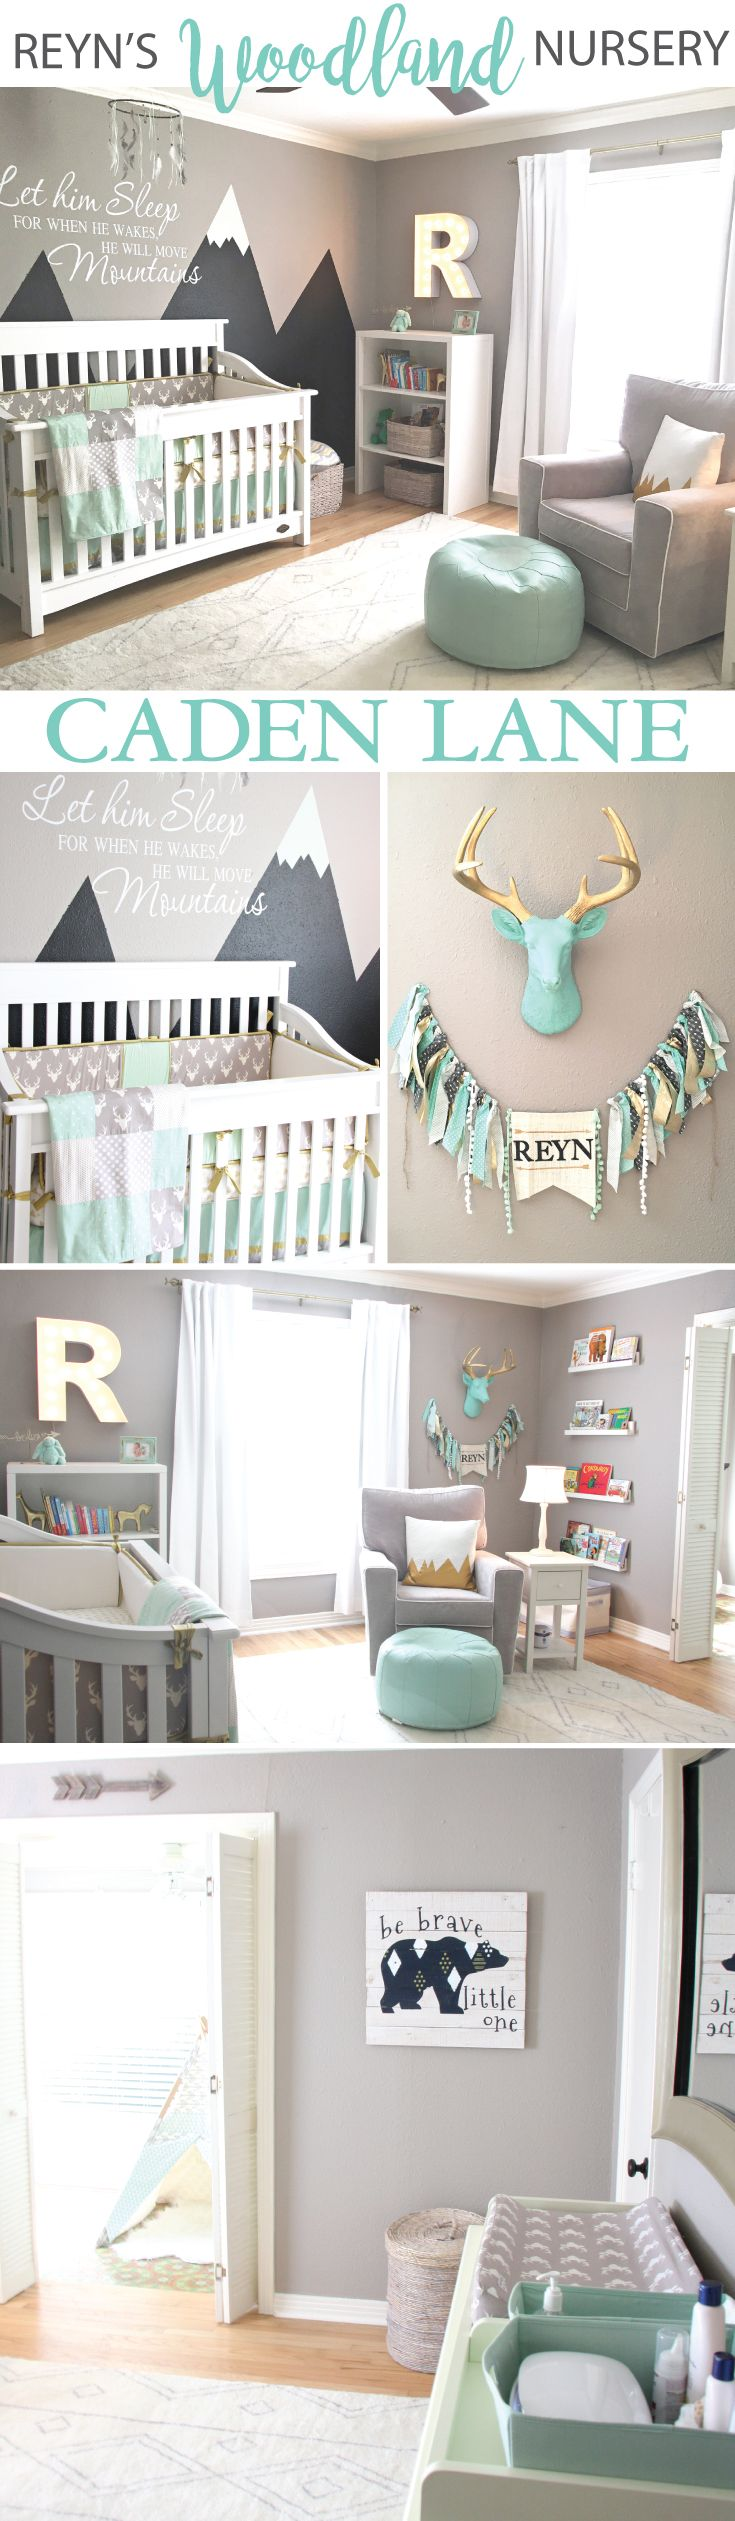 Best 25 baby boy rooms ideas on pinterest baby room for Baby room decoration boy